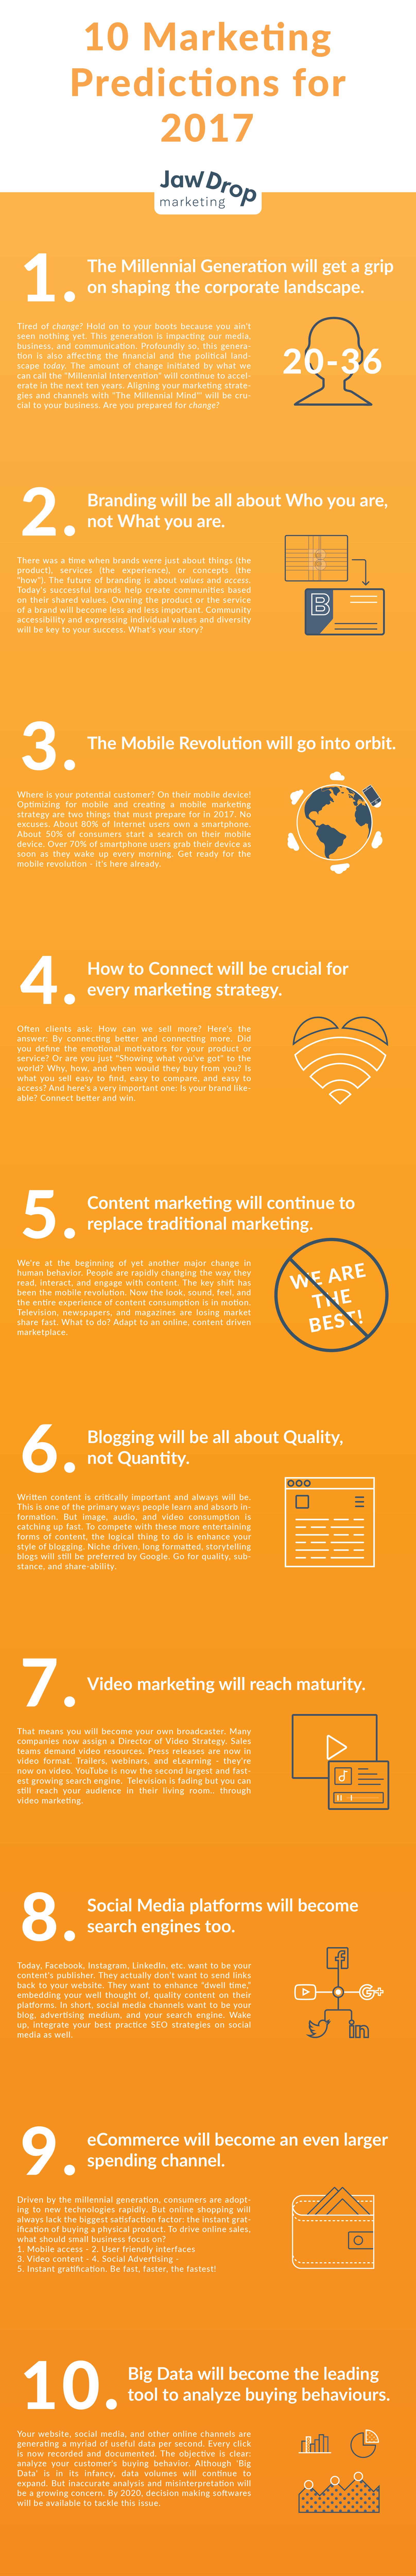 10 Marketing Predictions for 2017 - Infographic